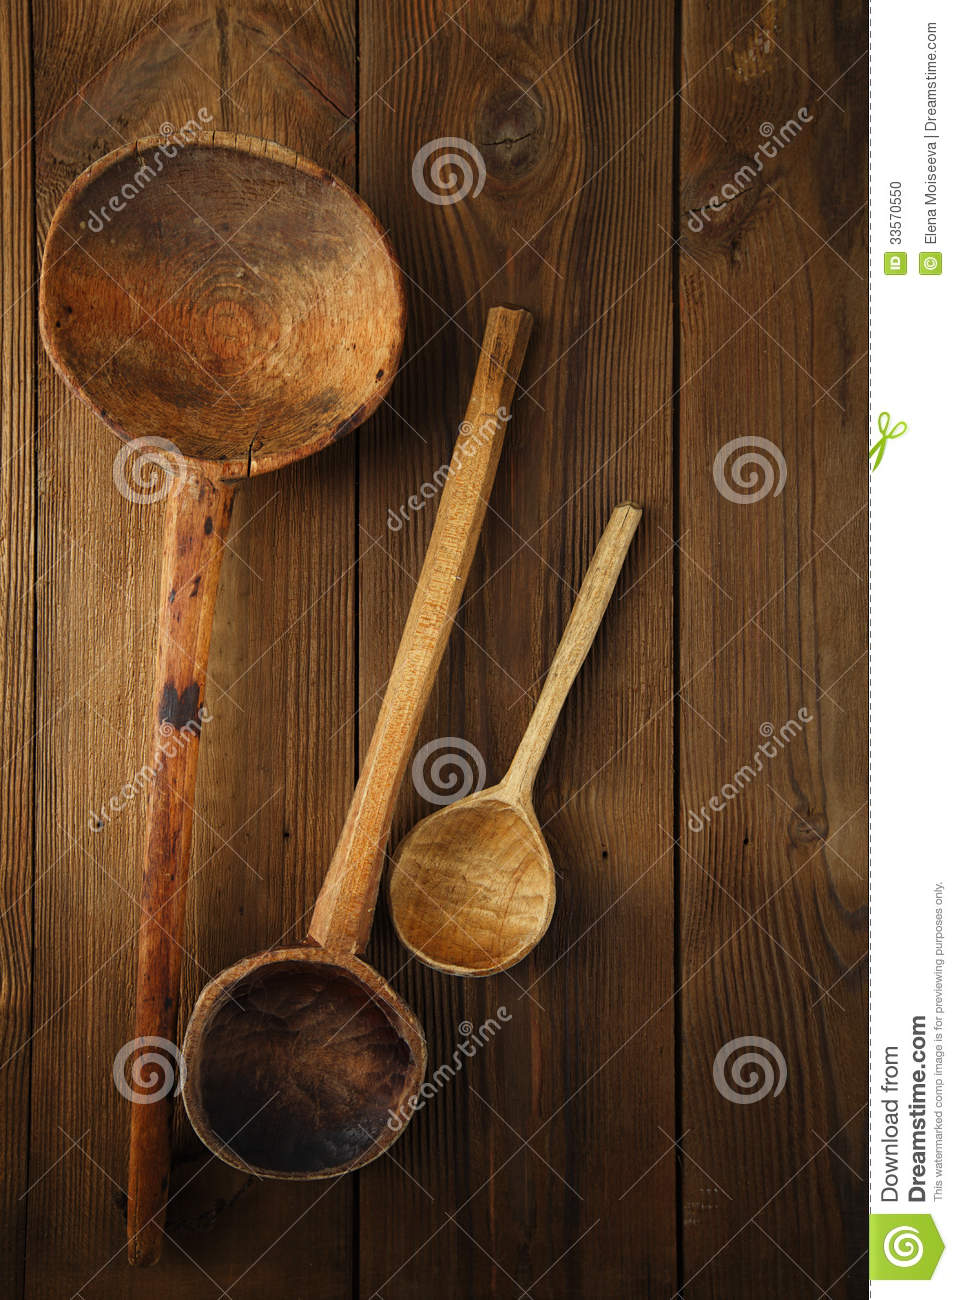 Retro Kitchen Utensils Wood Spoon On Old Wooden Table In Rustic Stock Photo Image 33570550